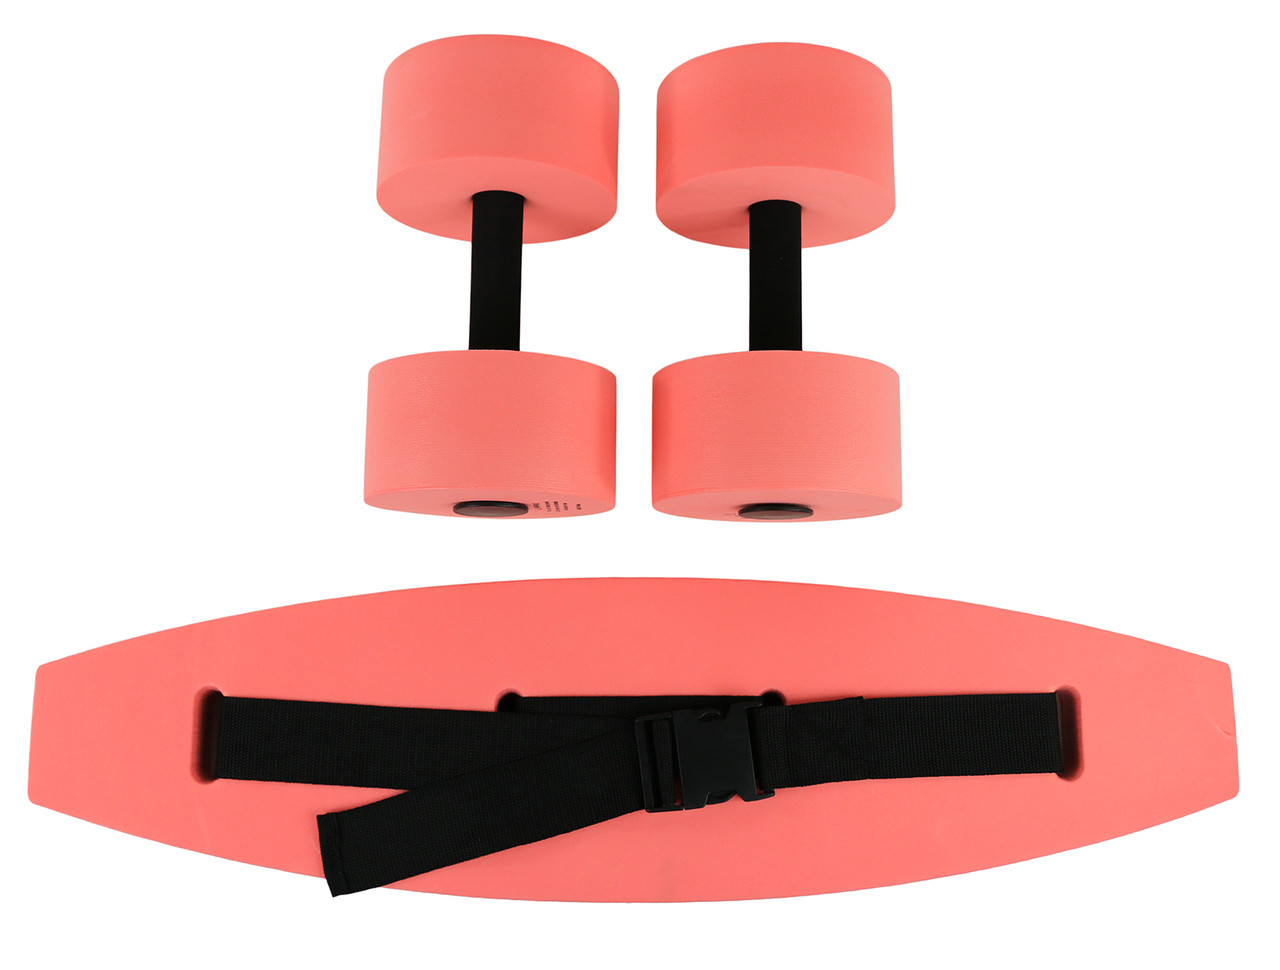 CanDo¨ aquatic exercise kit, (jogger belt, hand bars) medium, red